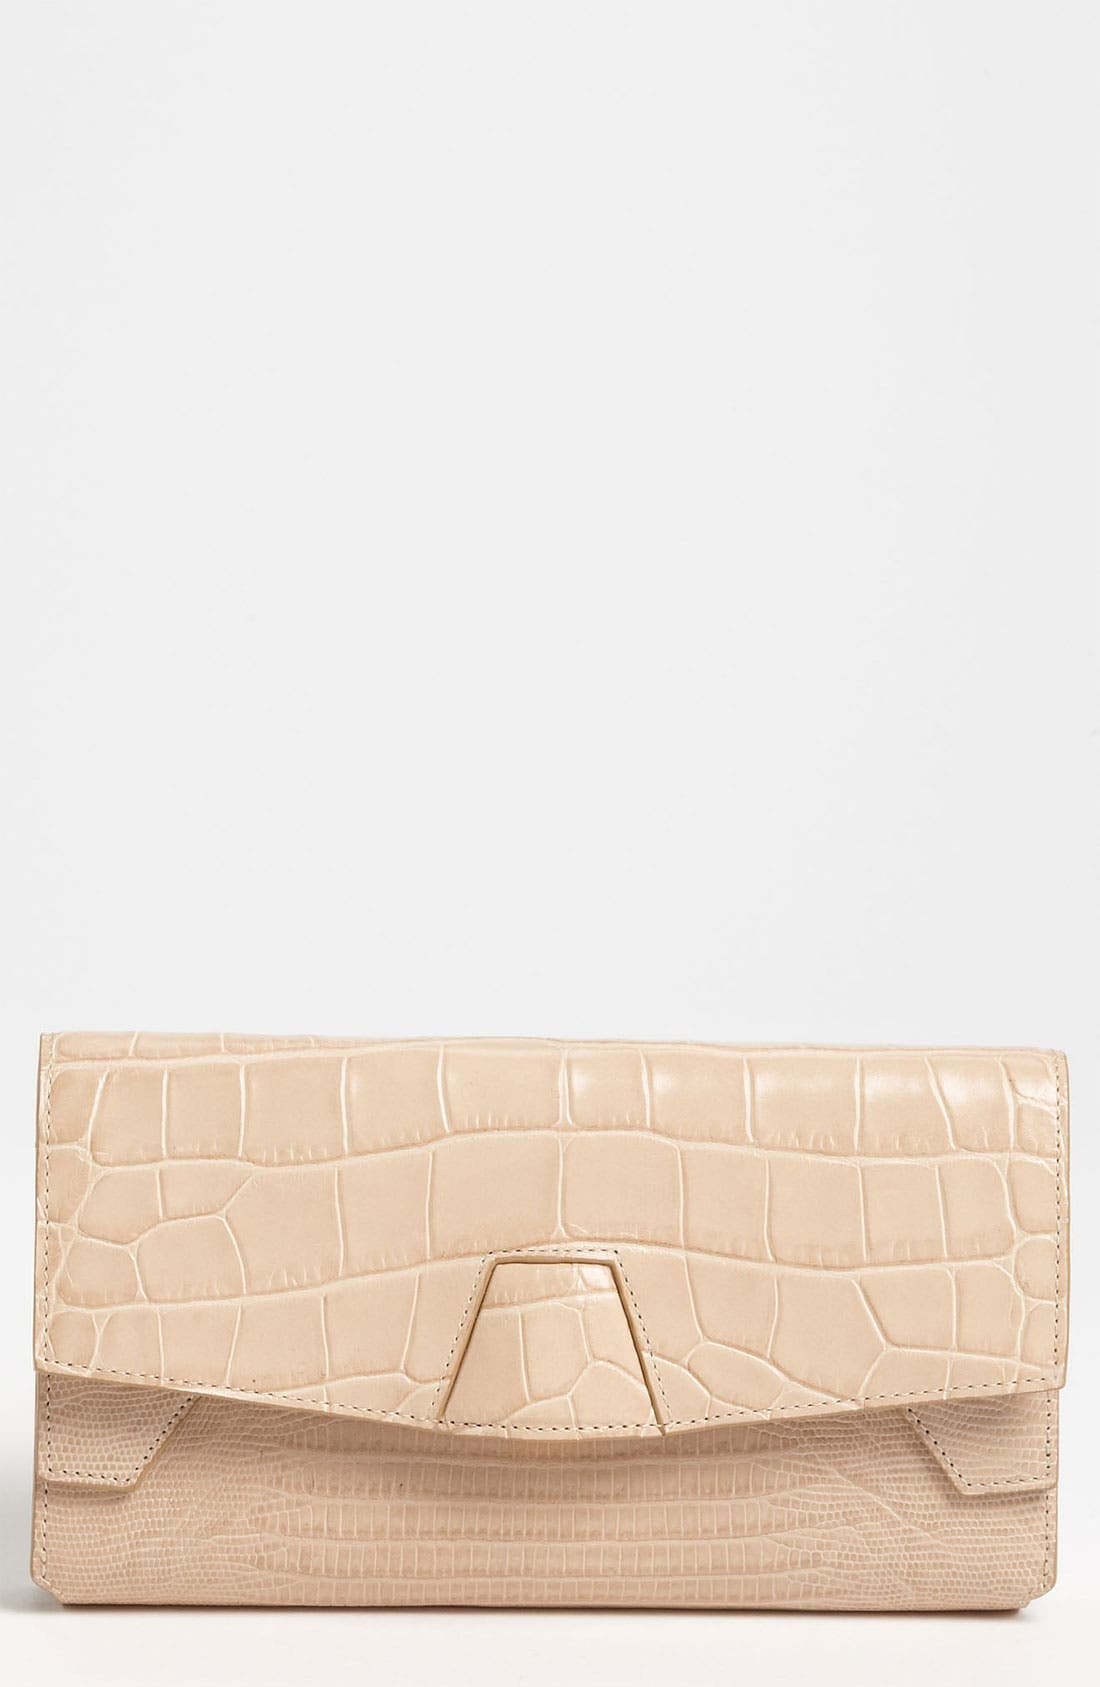 Main Image - Alexander Wang Trifold Embossed Leather Clutch